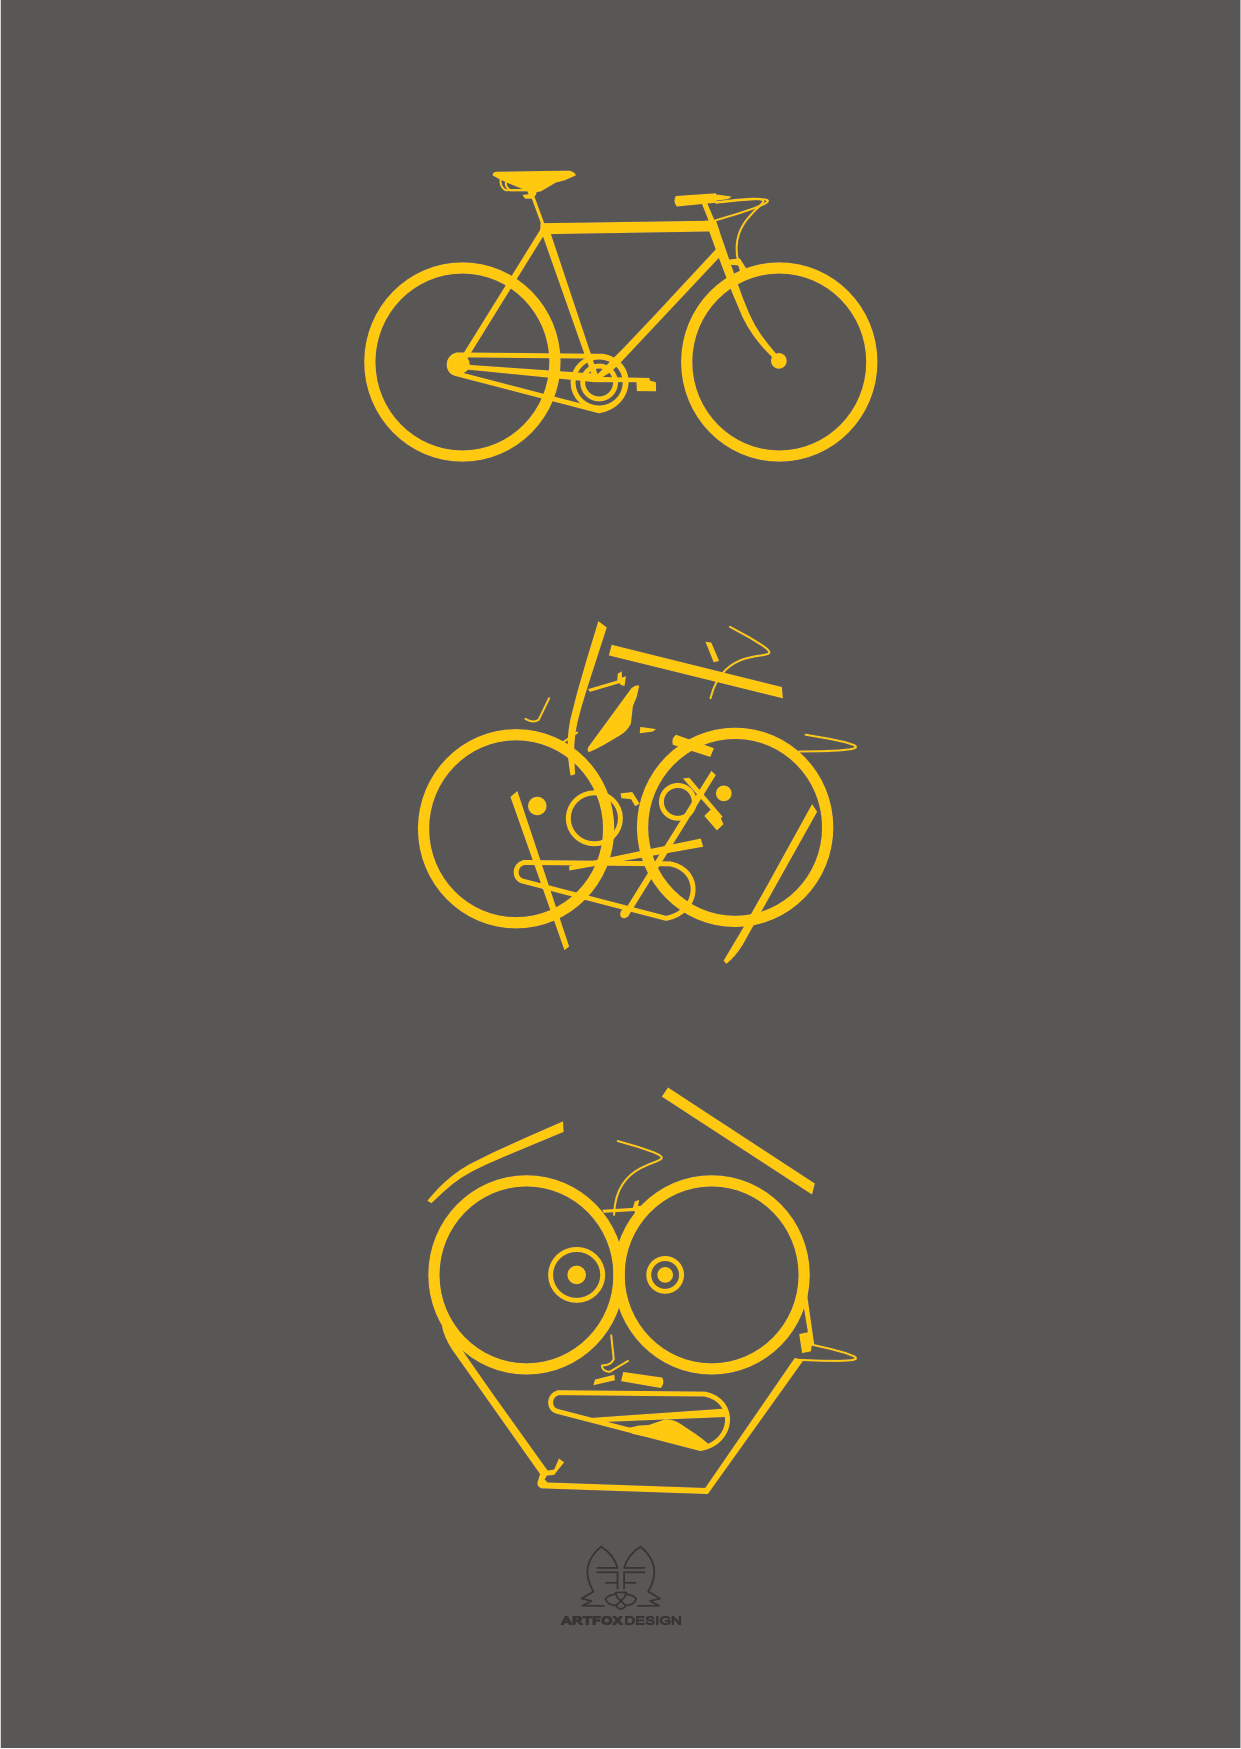 Yellow Face Cycle